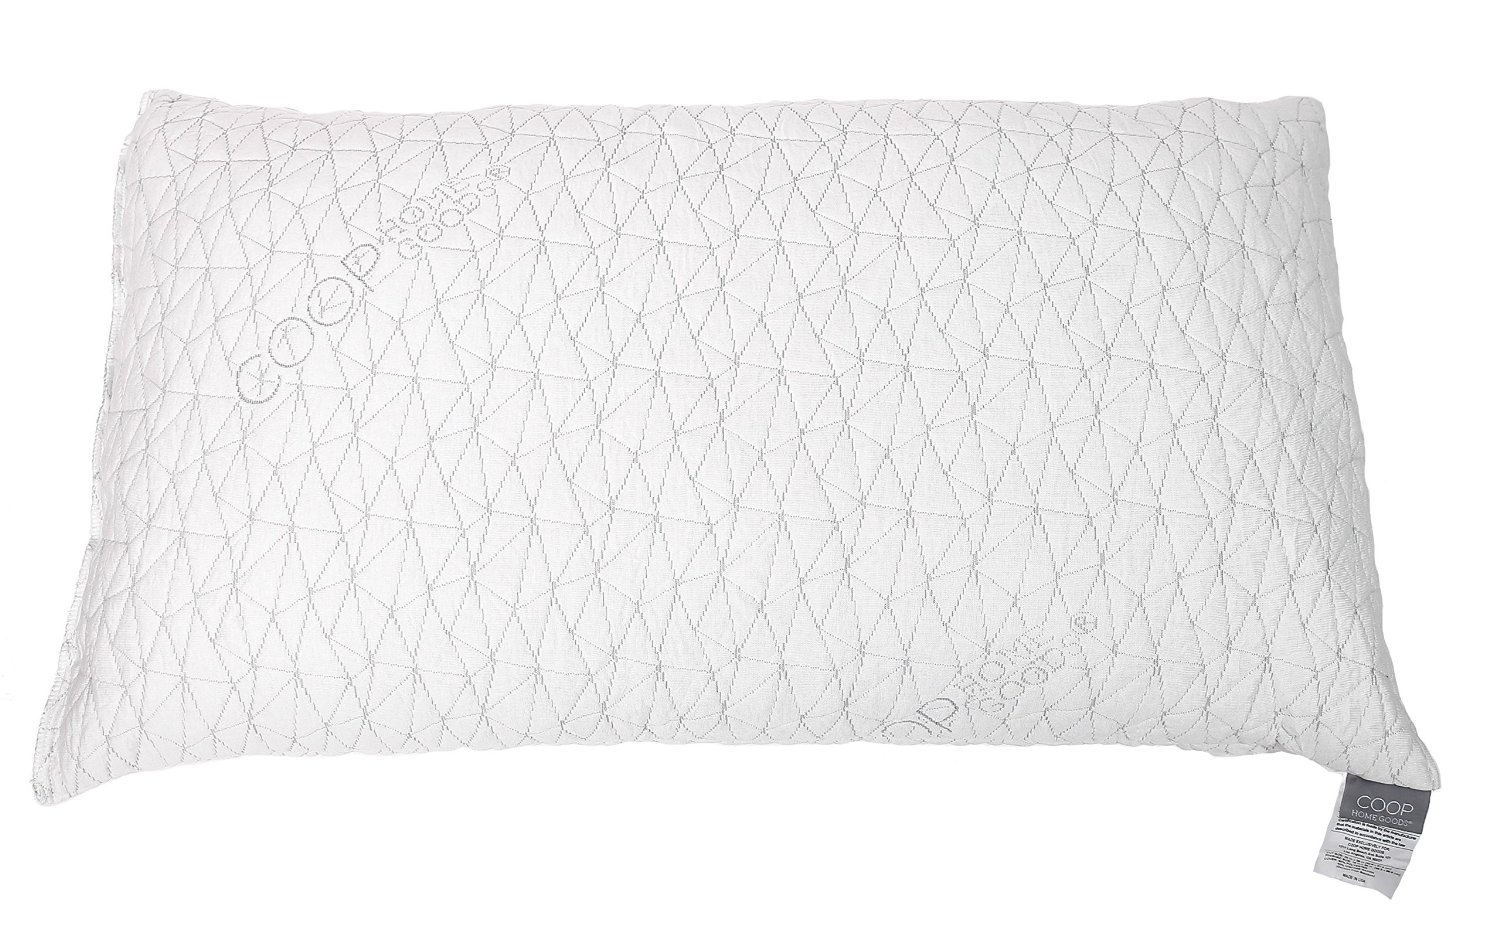 Coop Home Goods Pillow With Memory Foam Bamboo Pillow